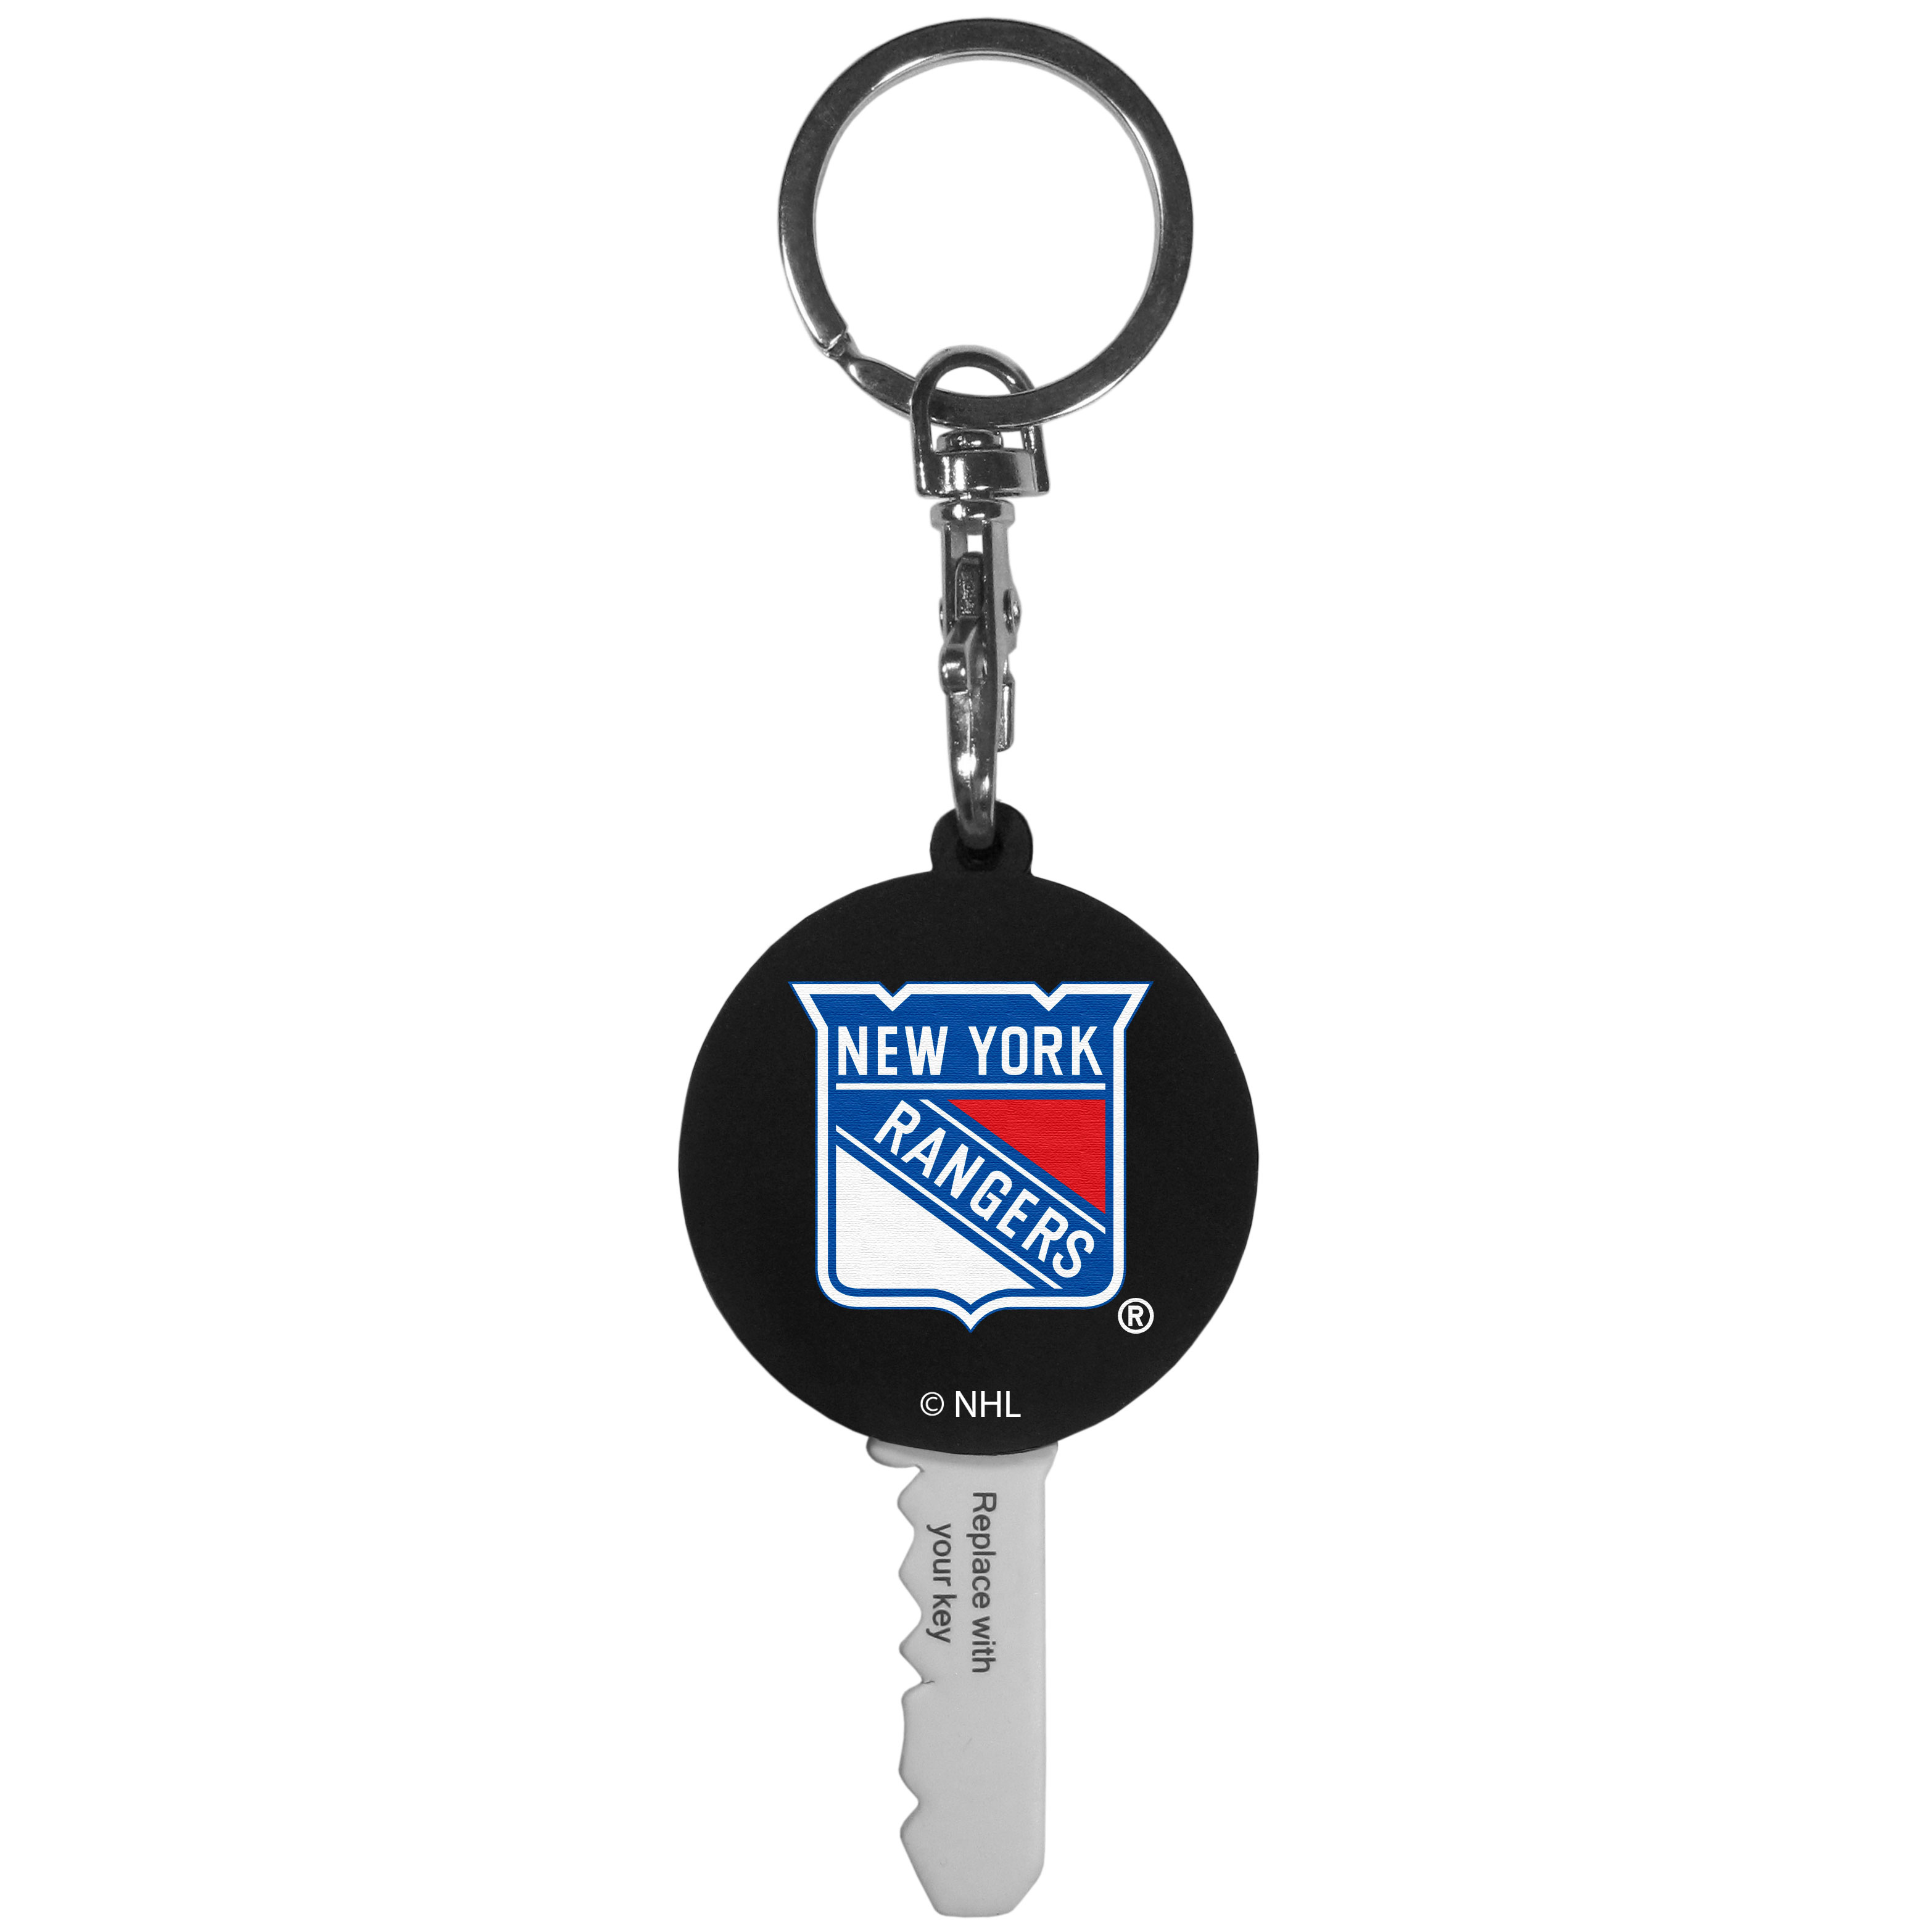 New York Rangers® Mini Light Key Topper - This super handy little key topper has a built in mini light that illuminates the lock so you do not have to fumble in the dark trying to open your door. You slide your house key into the top of the rubber key topper and your ready to go. The topper features a New York Rangers® logo on the front of the topper.